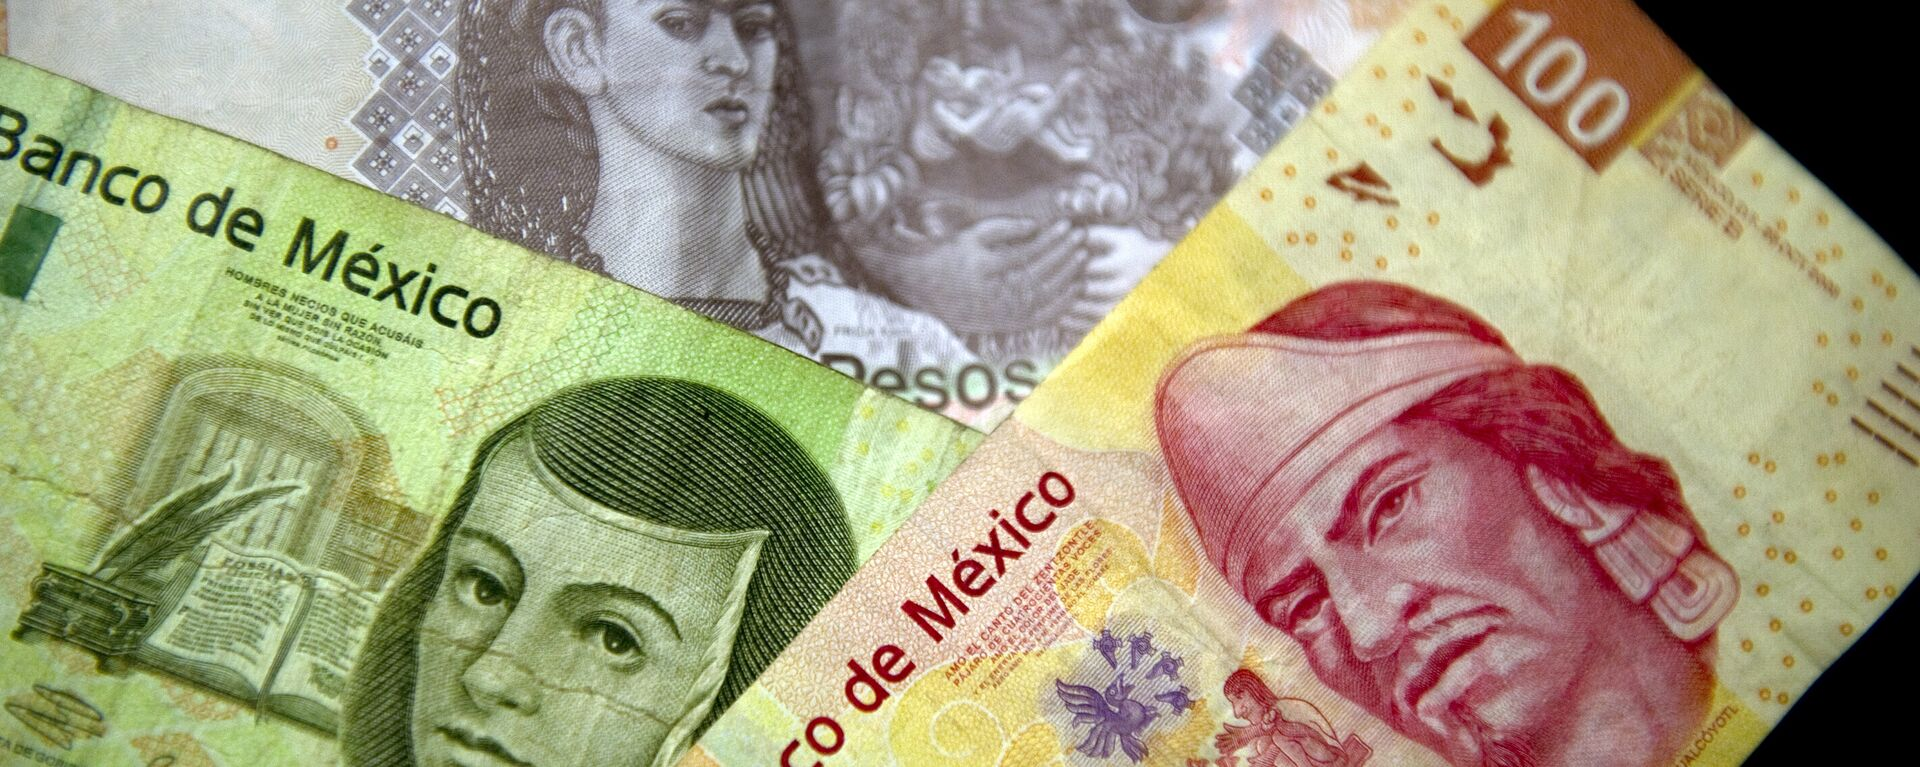 Picture of Mexican Peso notes of different denominations taken on December 27, 2011 in Mexico City - Sputnik Mundo, 1920, 03.05.2021